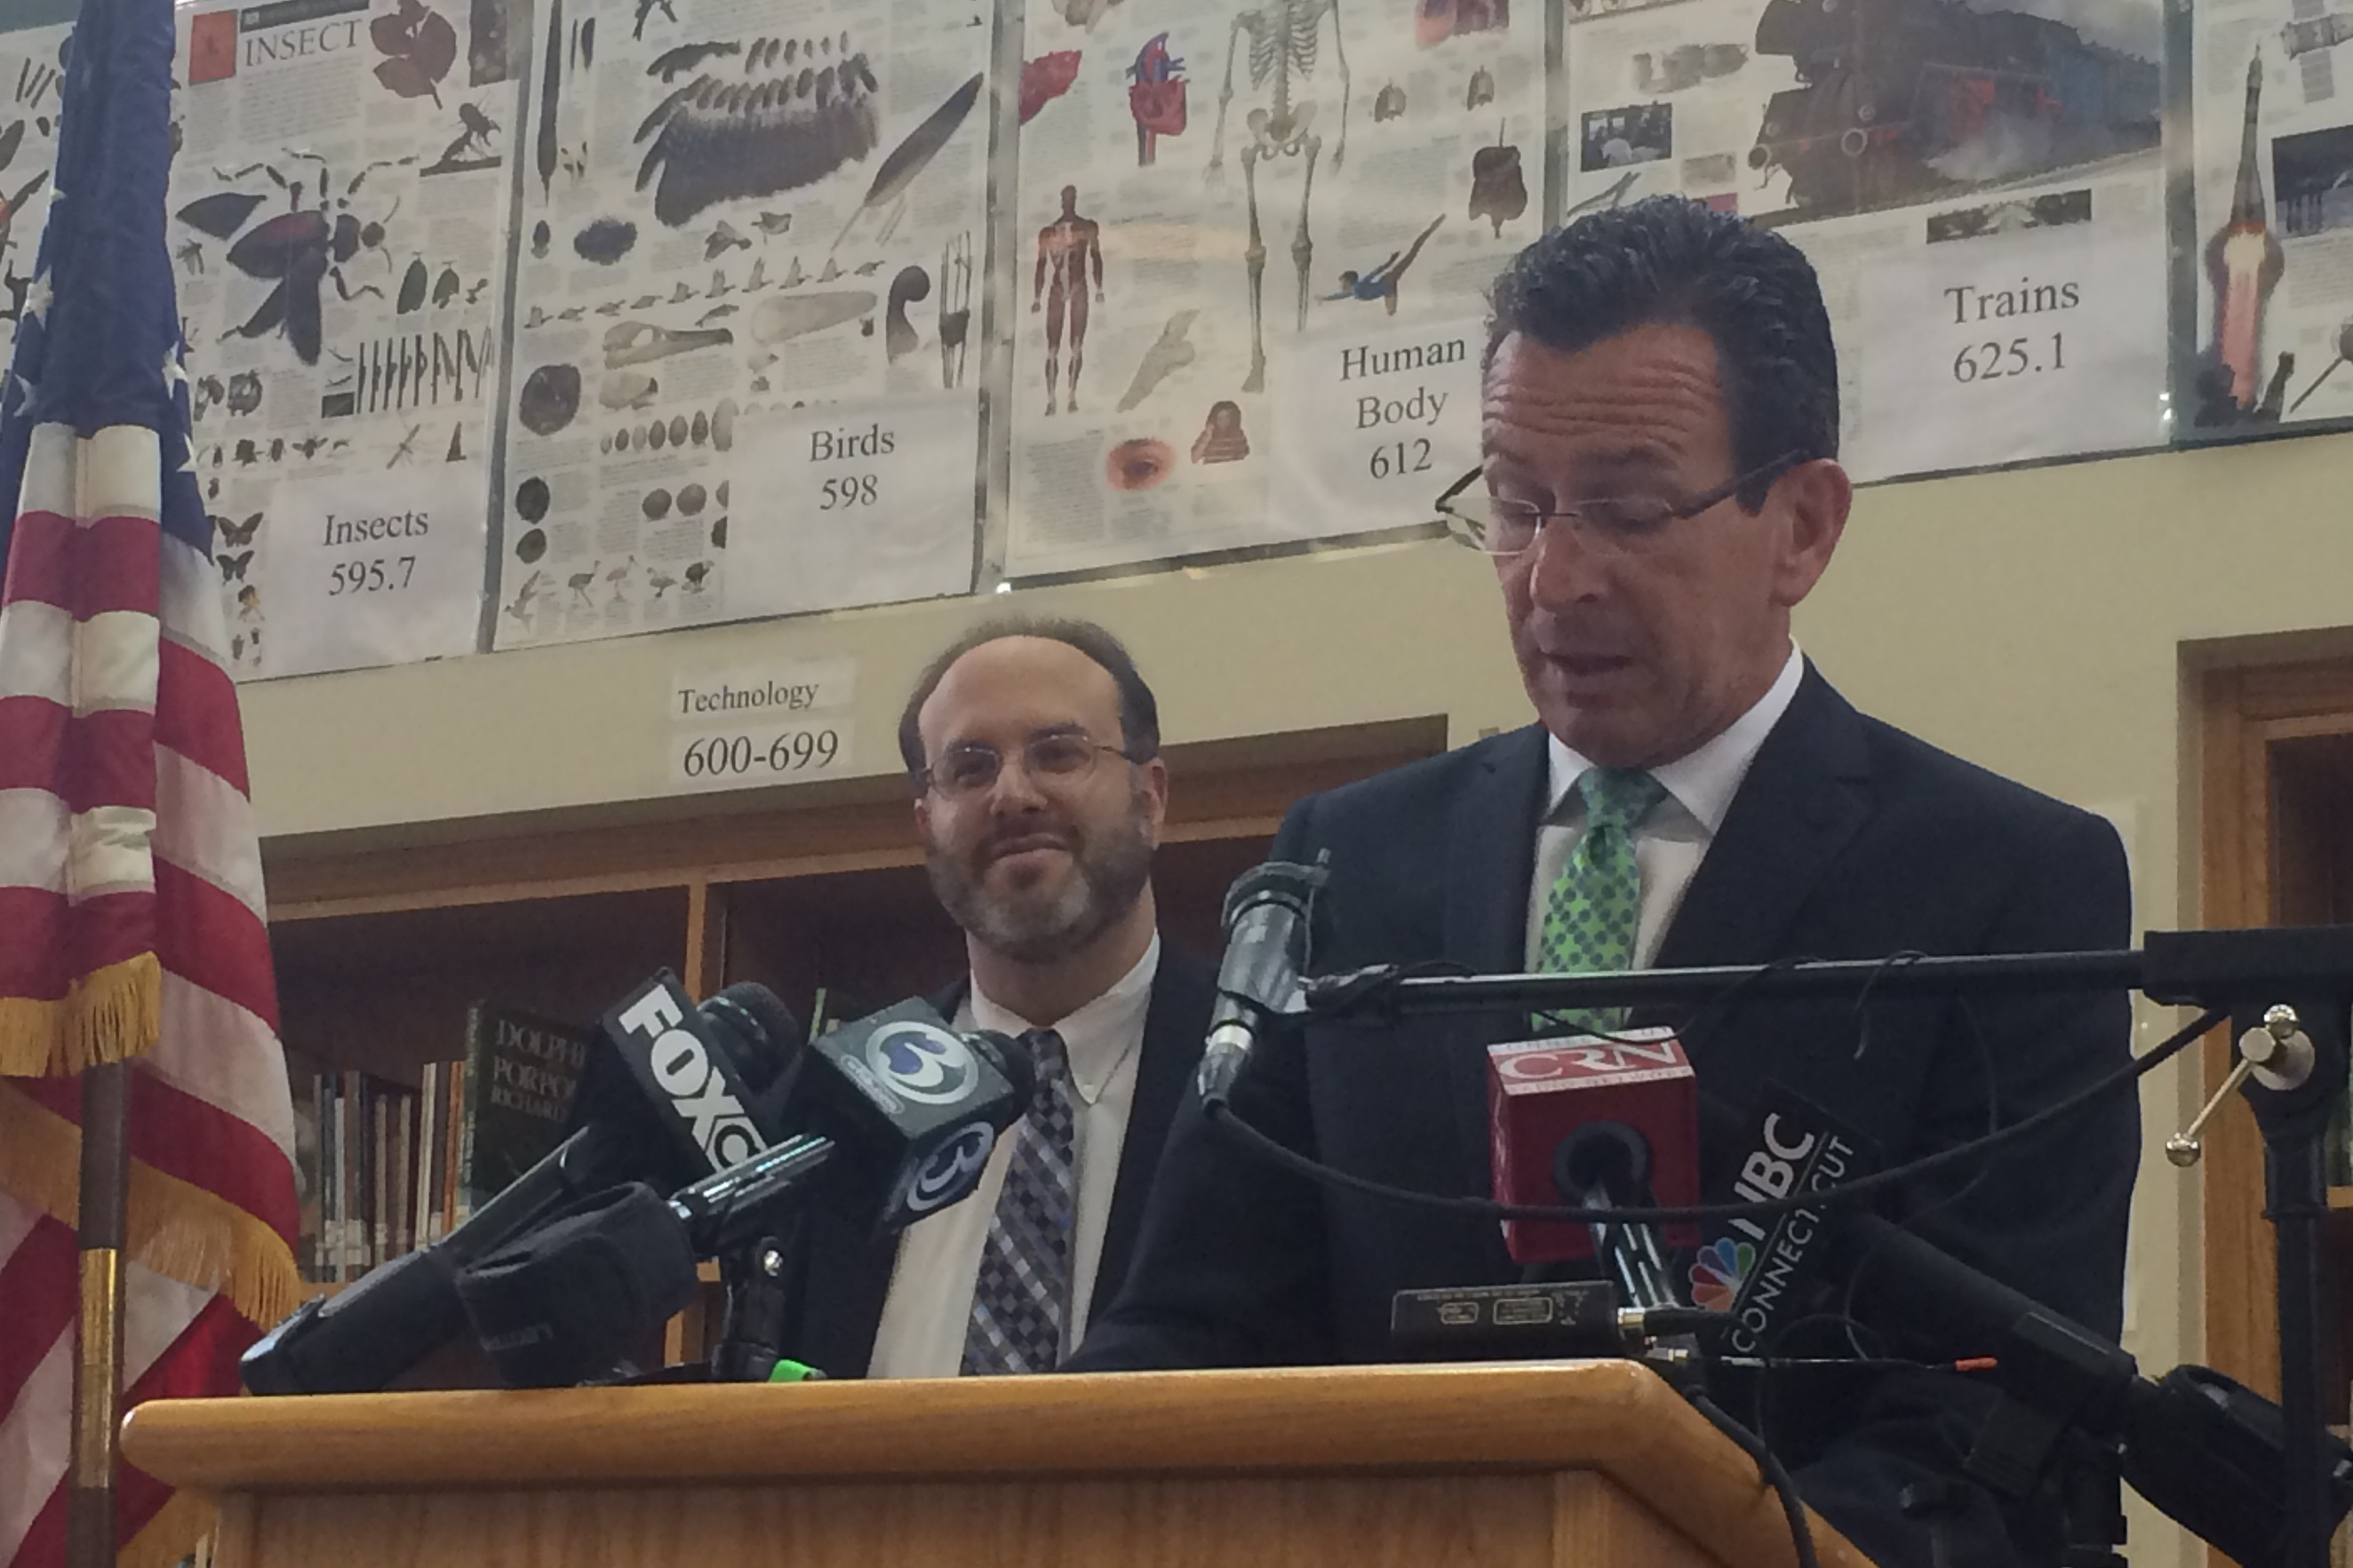 Malloy celebrates Pryor, but makes gesture to union critics